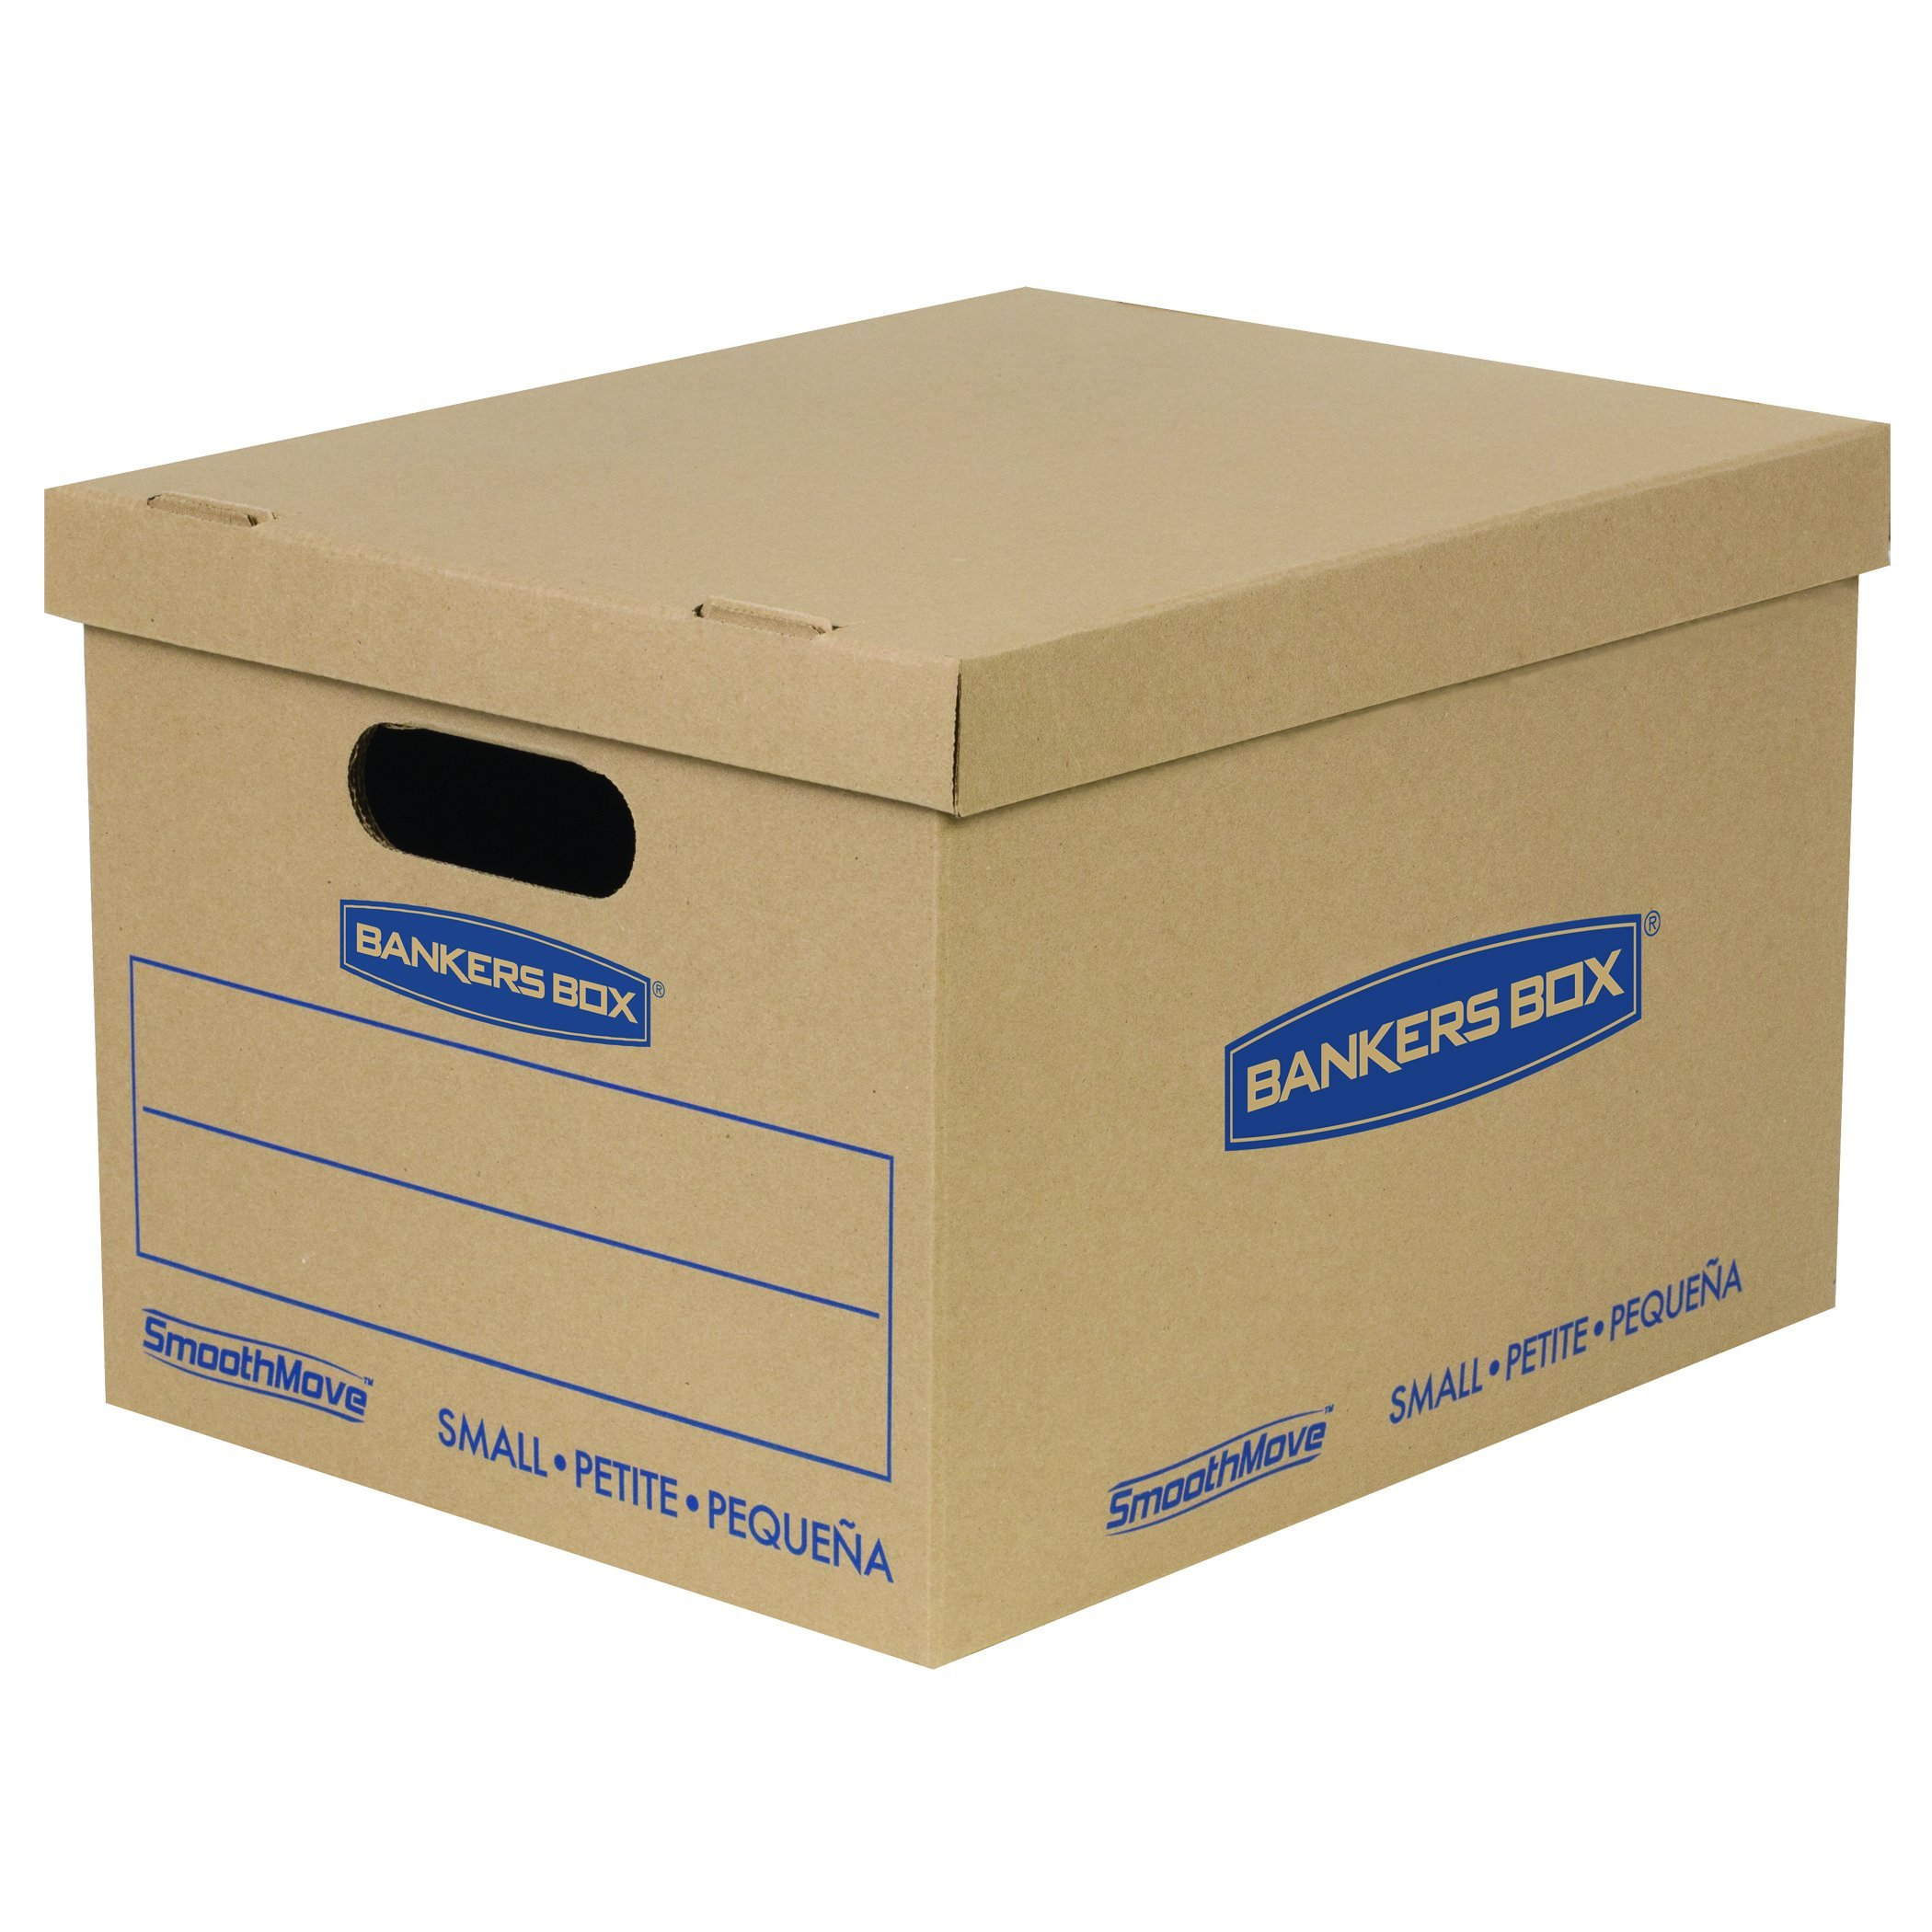 Bankers Box SmoothMove Classic Moving Boxes, Tape-Free Assembly, Easy Carry Handles, Small, 15 x 12 x 10 Inches, 15 Pack (7714209)